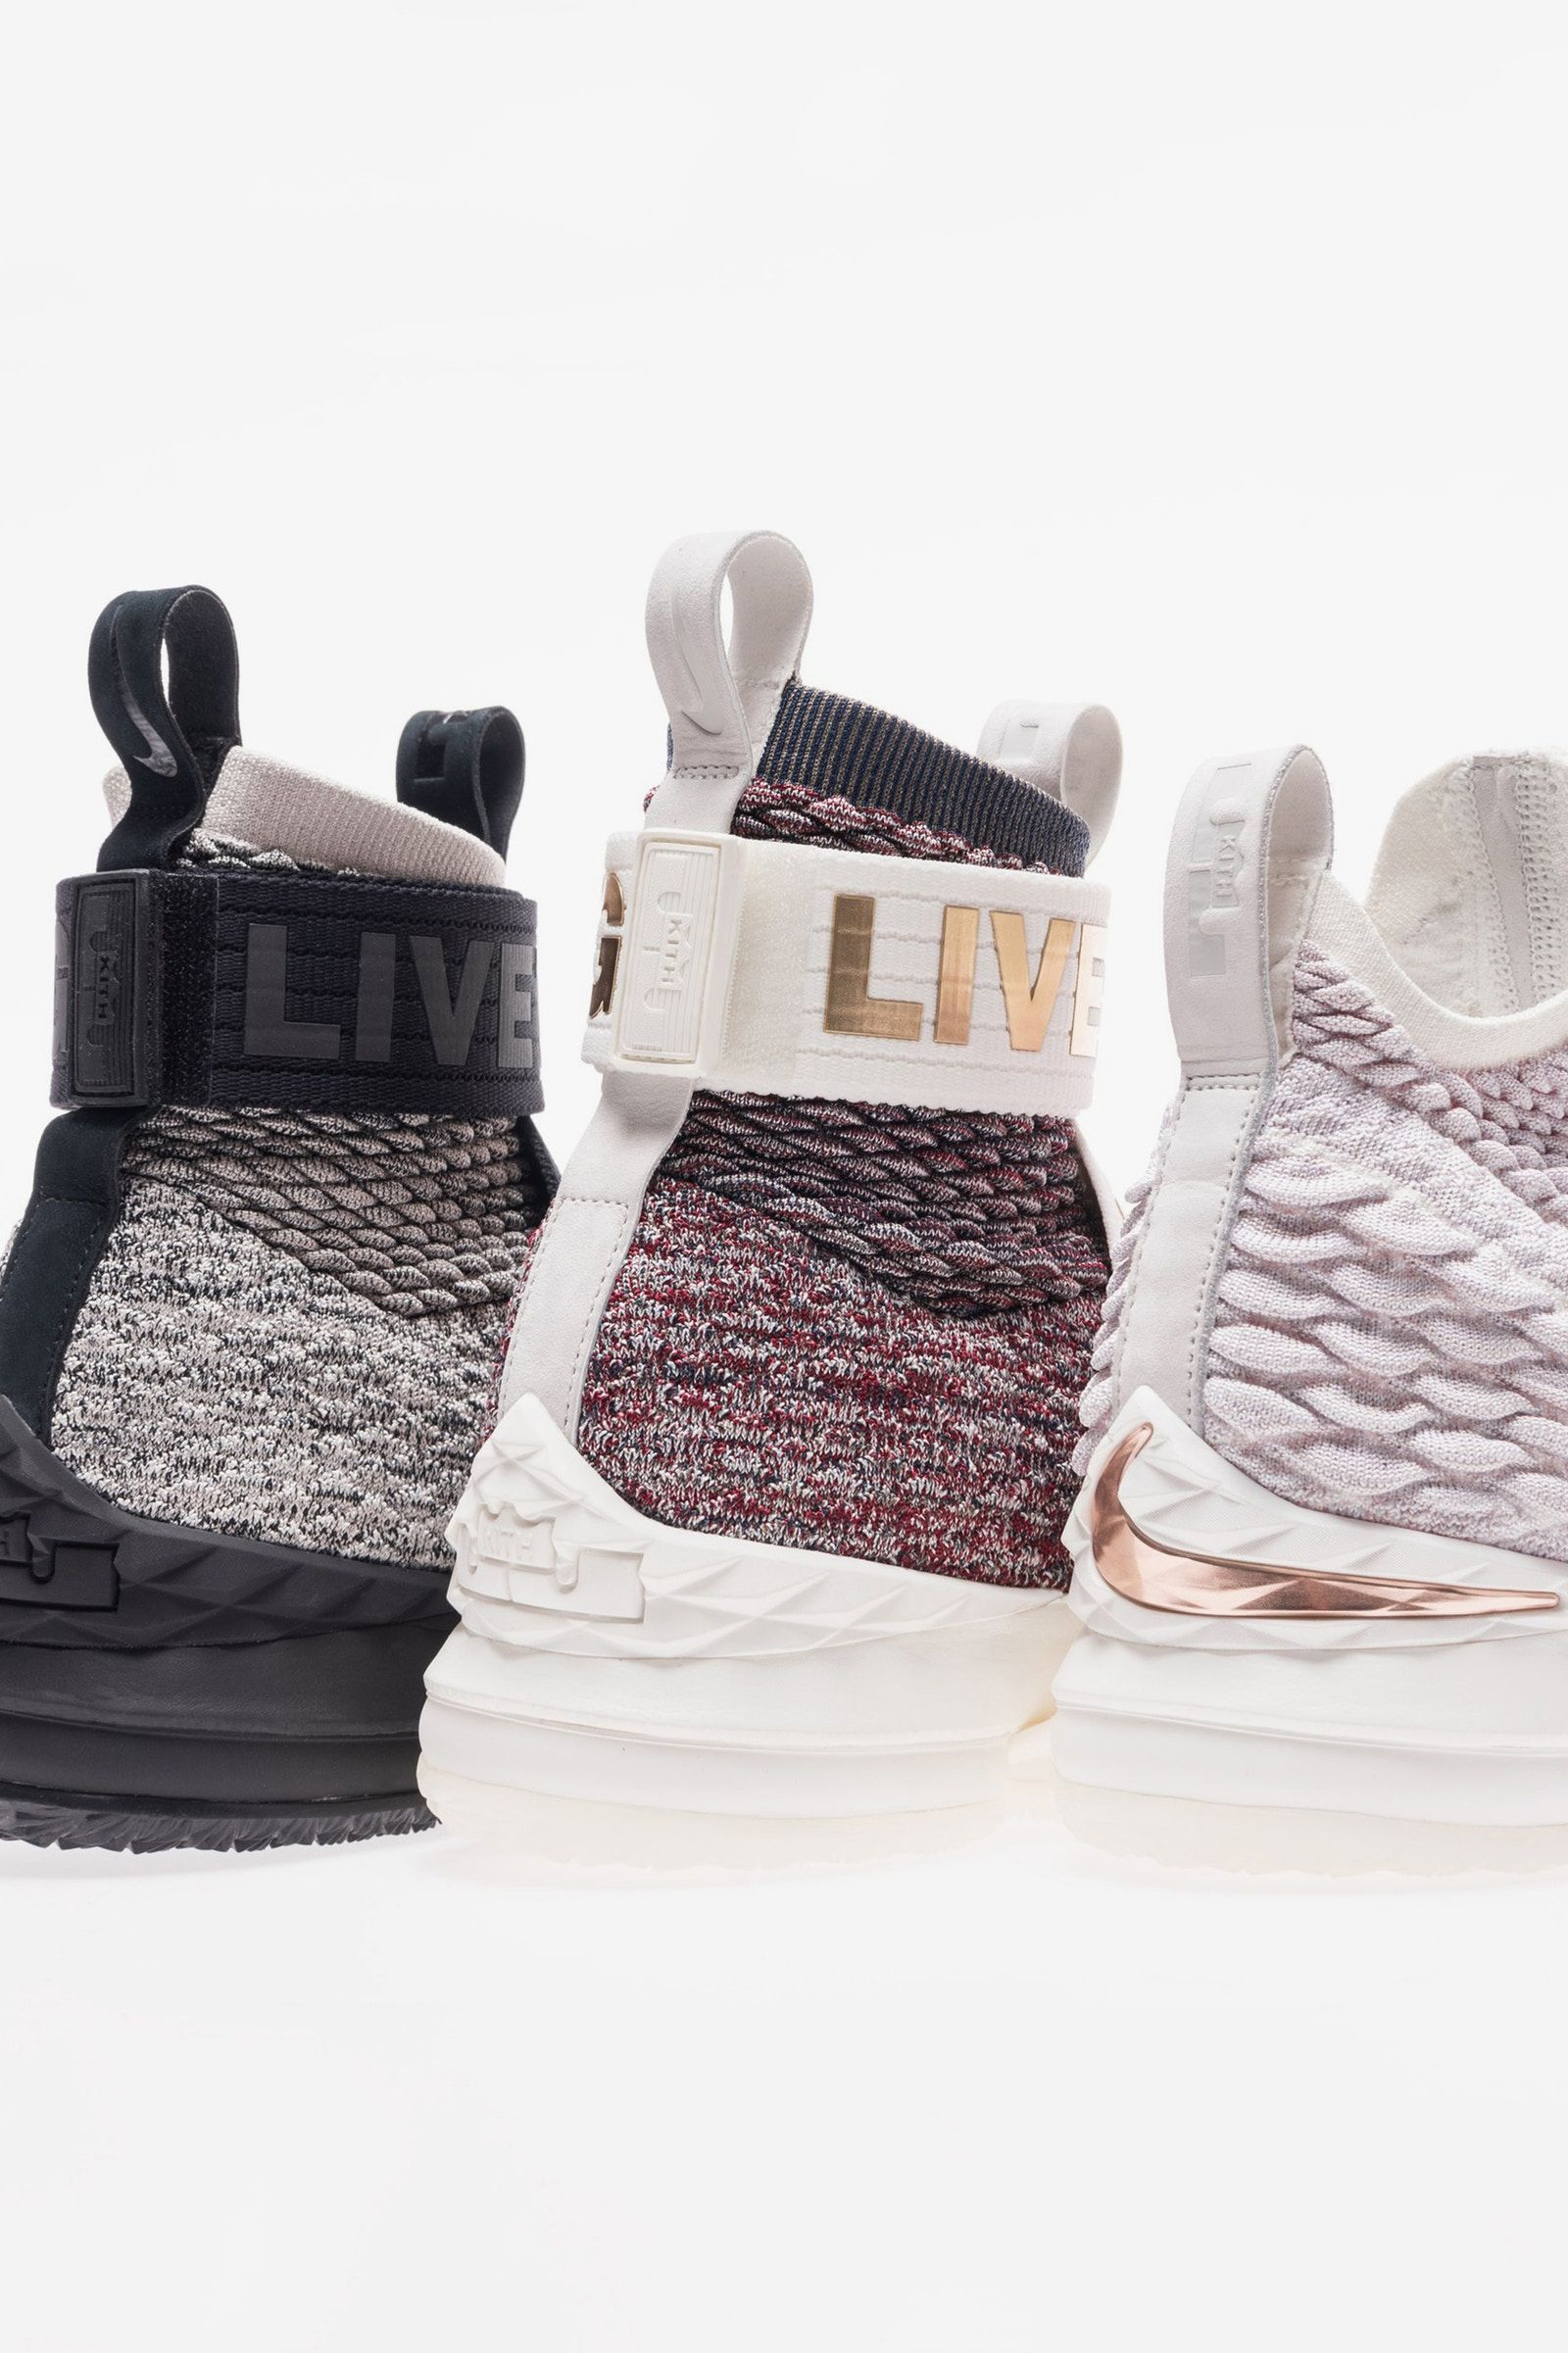 96685566386 Ronnie Fieg Nike LeBron 15 Long Live the King kith strap straps laceless  black white grey red